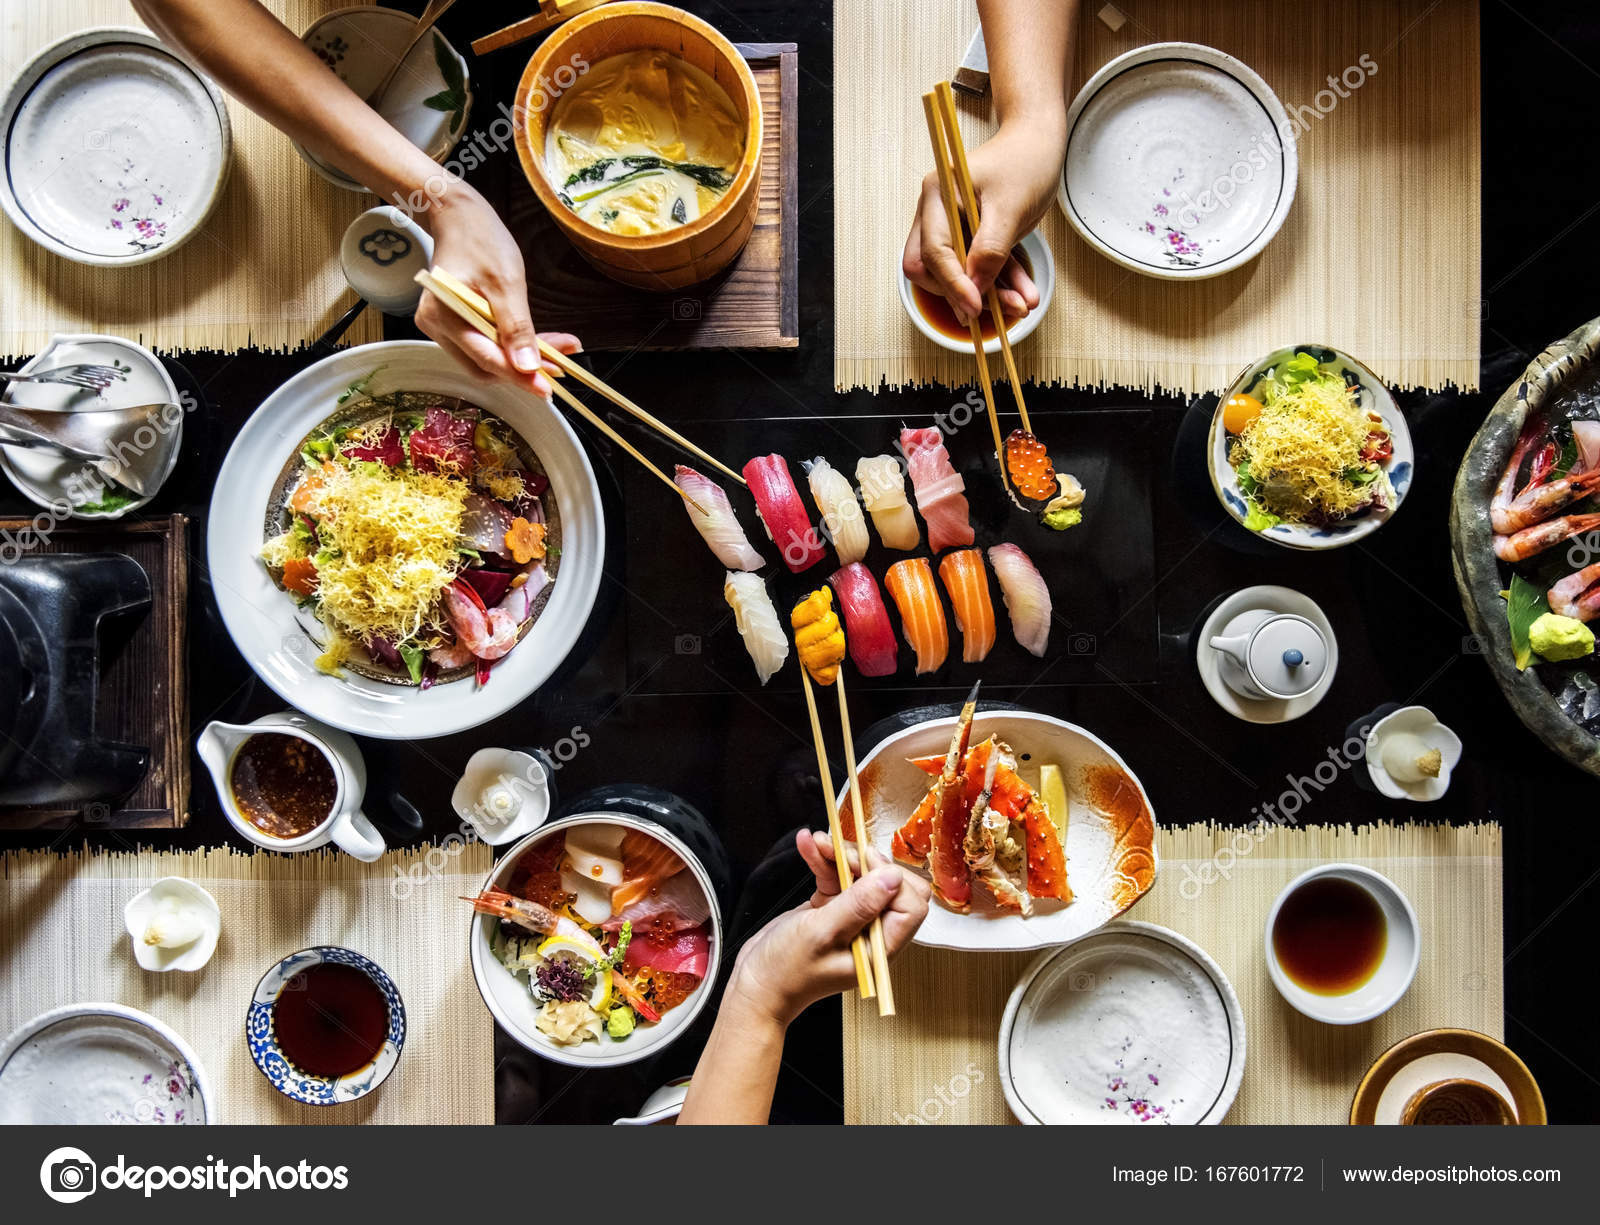 People Eating In Japanese Restaurant Stock Photo C Rawpixel 167601772